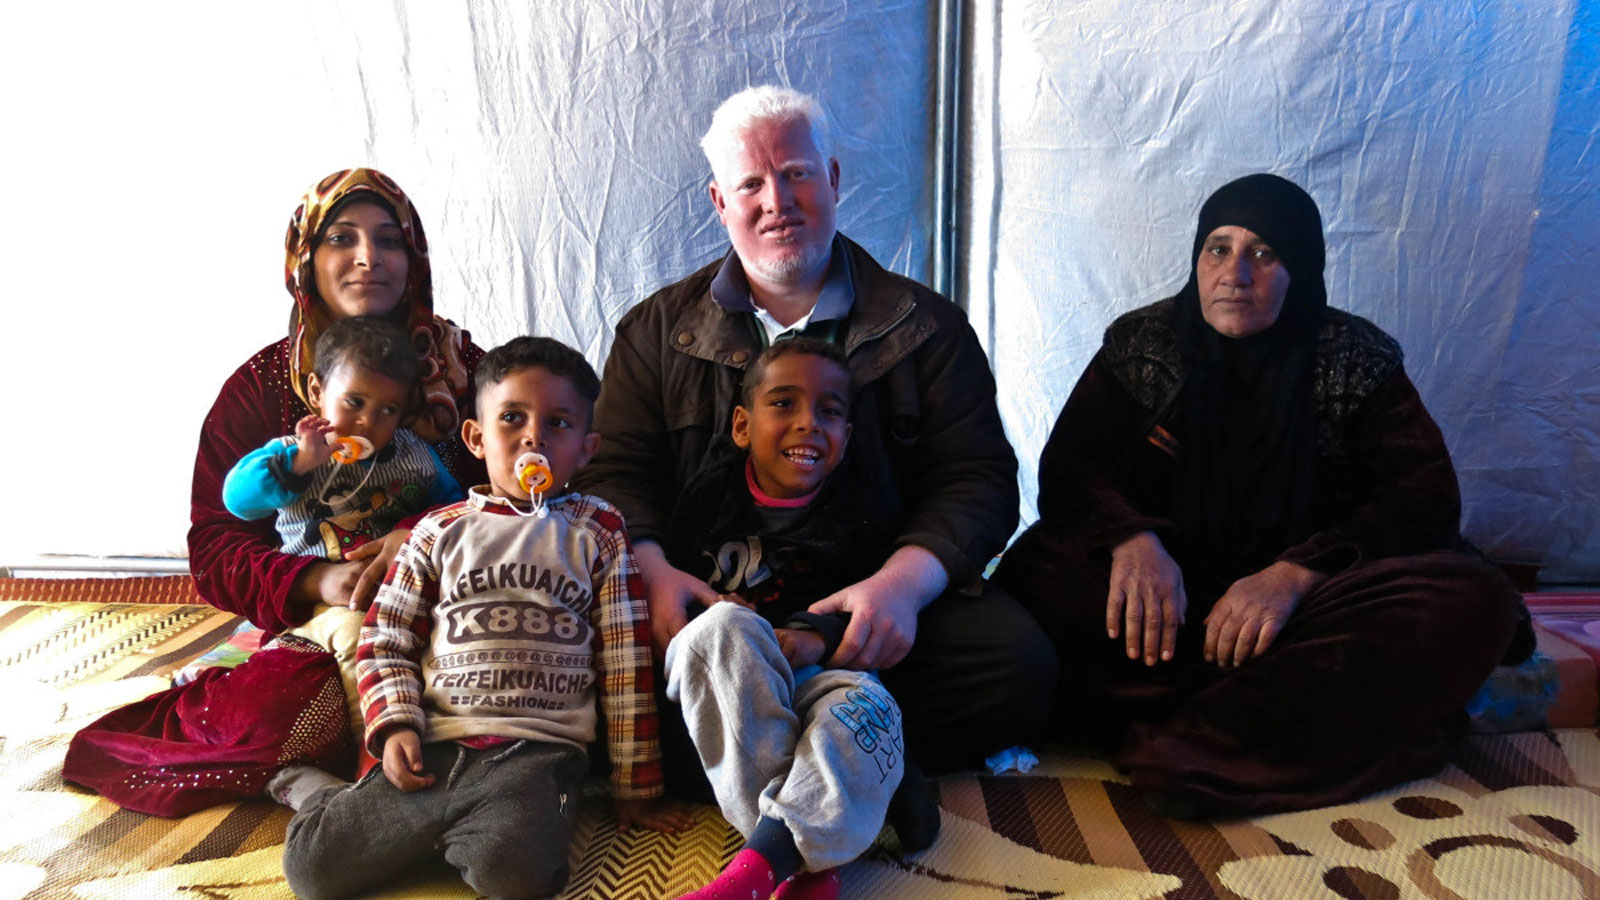 Zeidan and his family